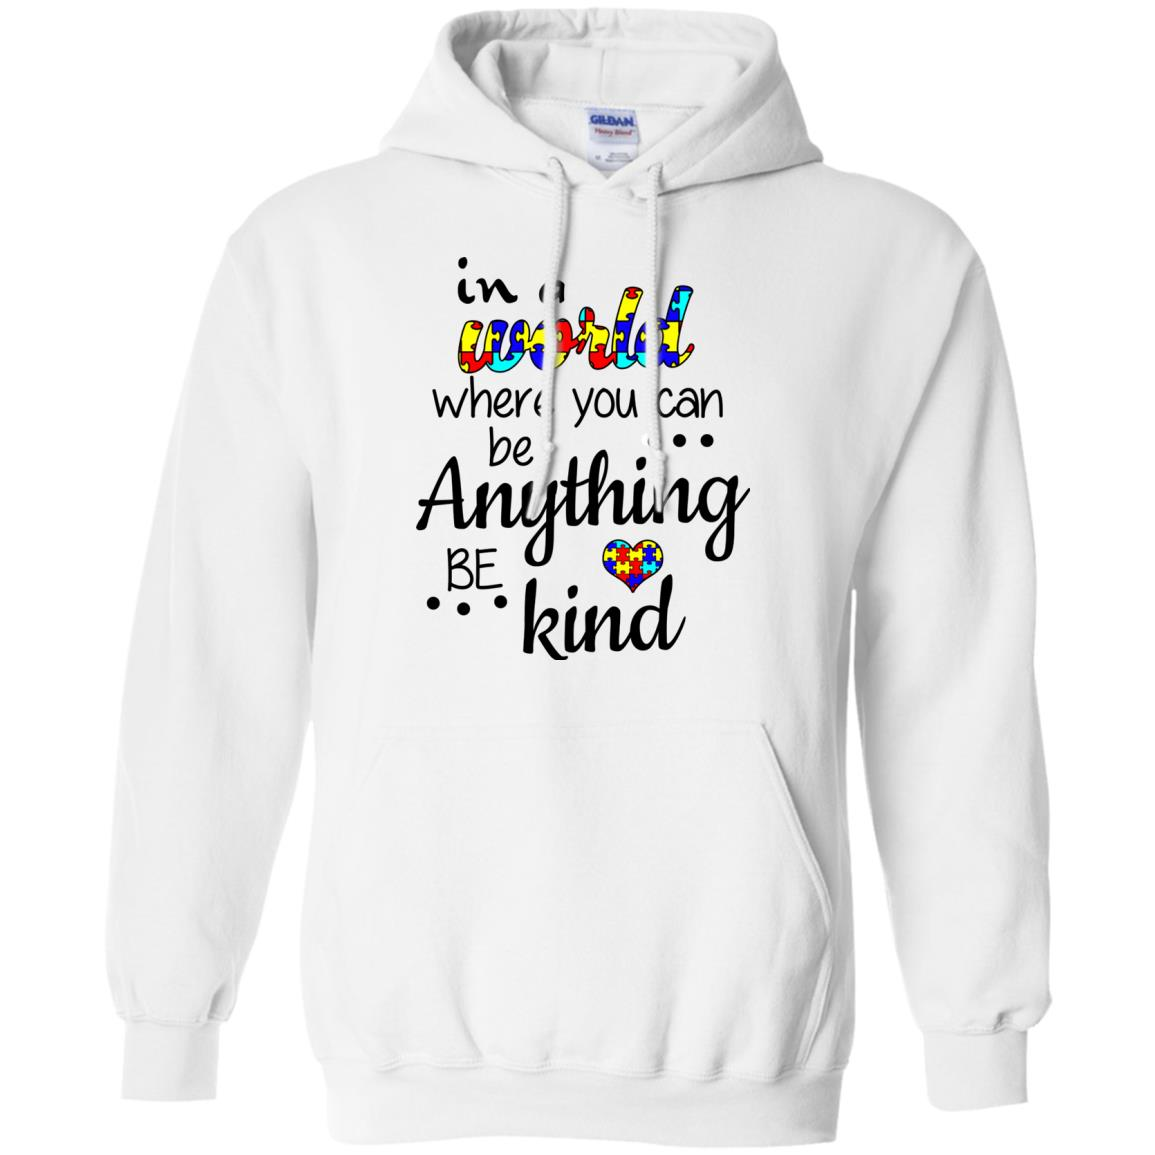 image 669 - Autism: In a World Where You Can Be Anything Be Kind Shirt